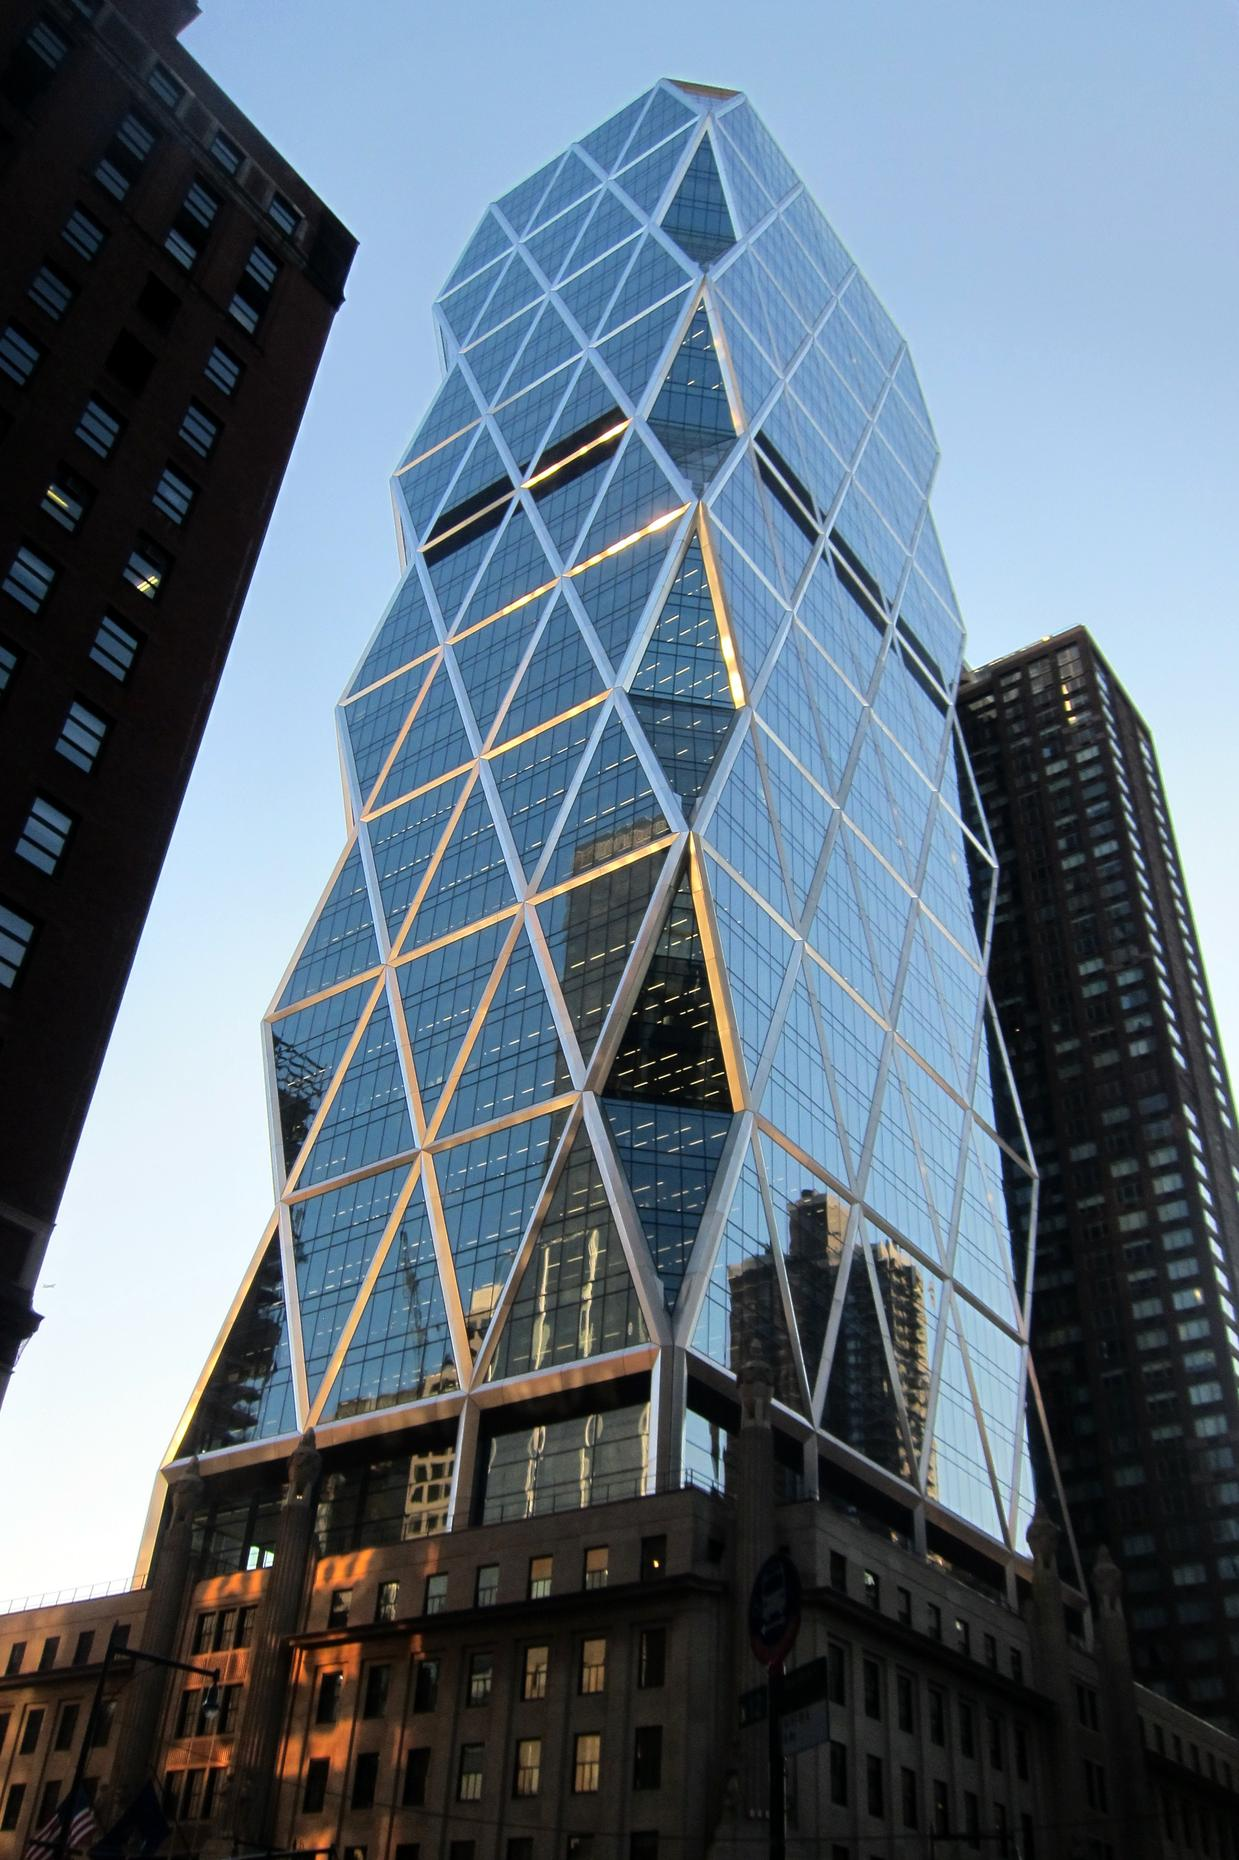 New York City's Hearst Building